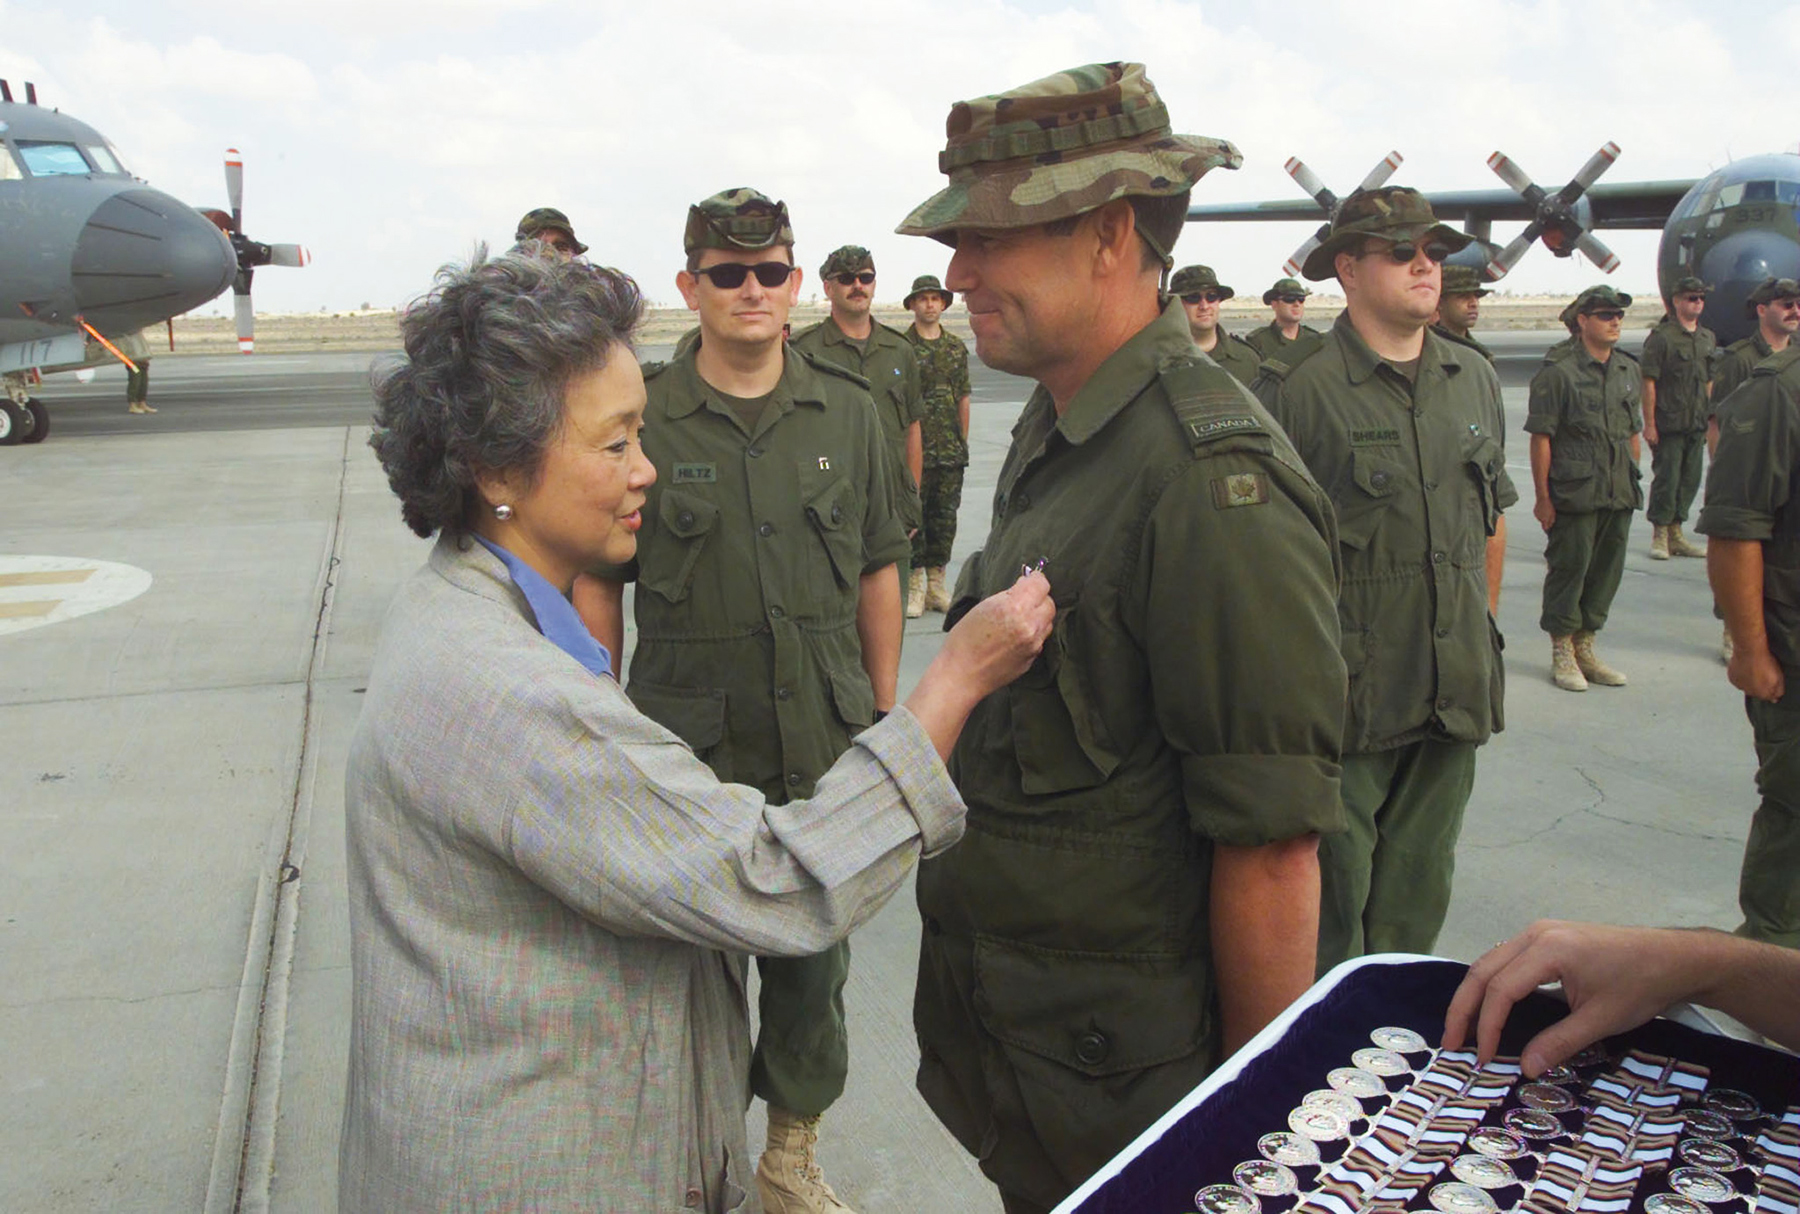 On December 26, 2002, Governor General and Commander-in-Chief of Canada Adrienne Clarkson presents Major David O'Brien, of the long-range patrol detachment, with the South West Asia Service Medal during her Christmas visit to meet the troops at Camp Mirage in the Arabian Gulf Region. PHOTO: Corporal Willie Langer, APD02-0418-100a